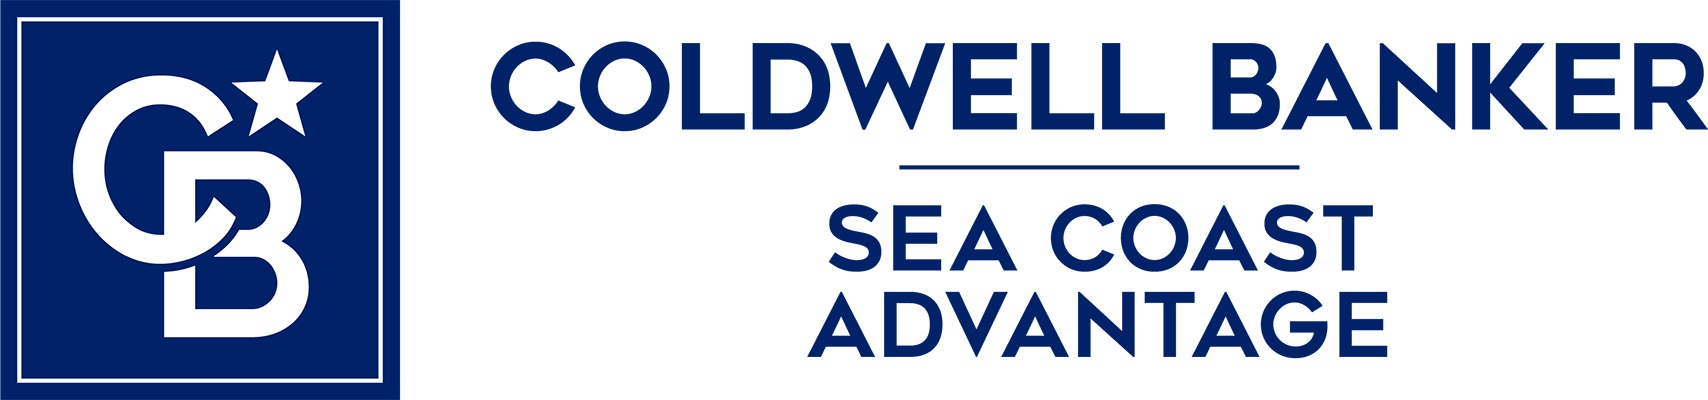 Jennifer Reinholt - Coldwell Banker Sea Coast Advantage Realty Logo